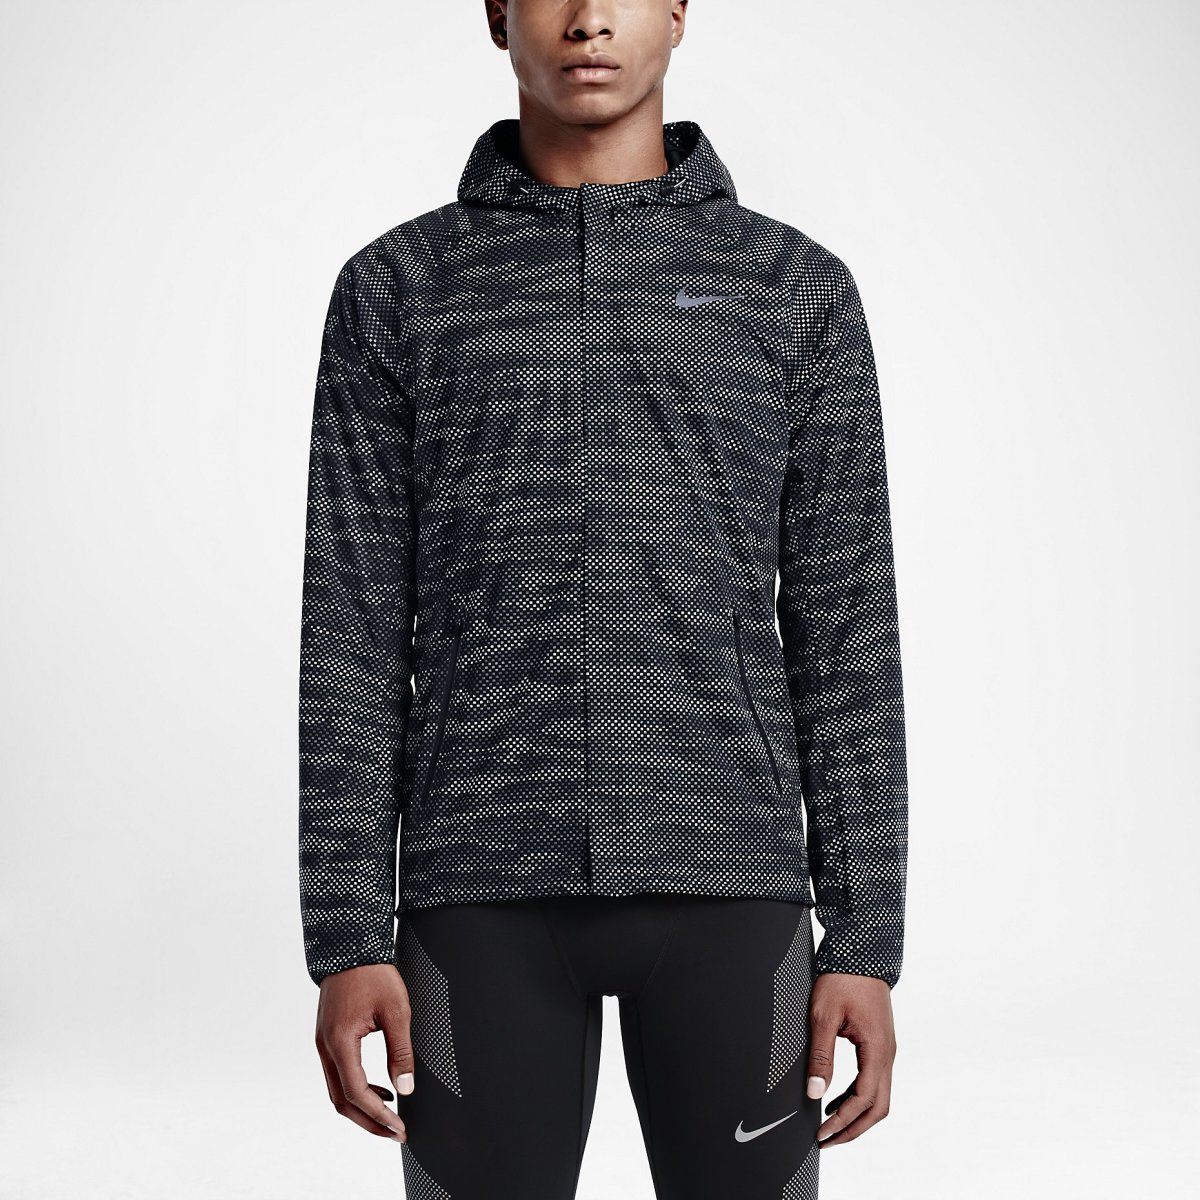 9327d42c7621f Stay visible with Nike s Shield Flash Max Running Jacket - Acquire